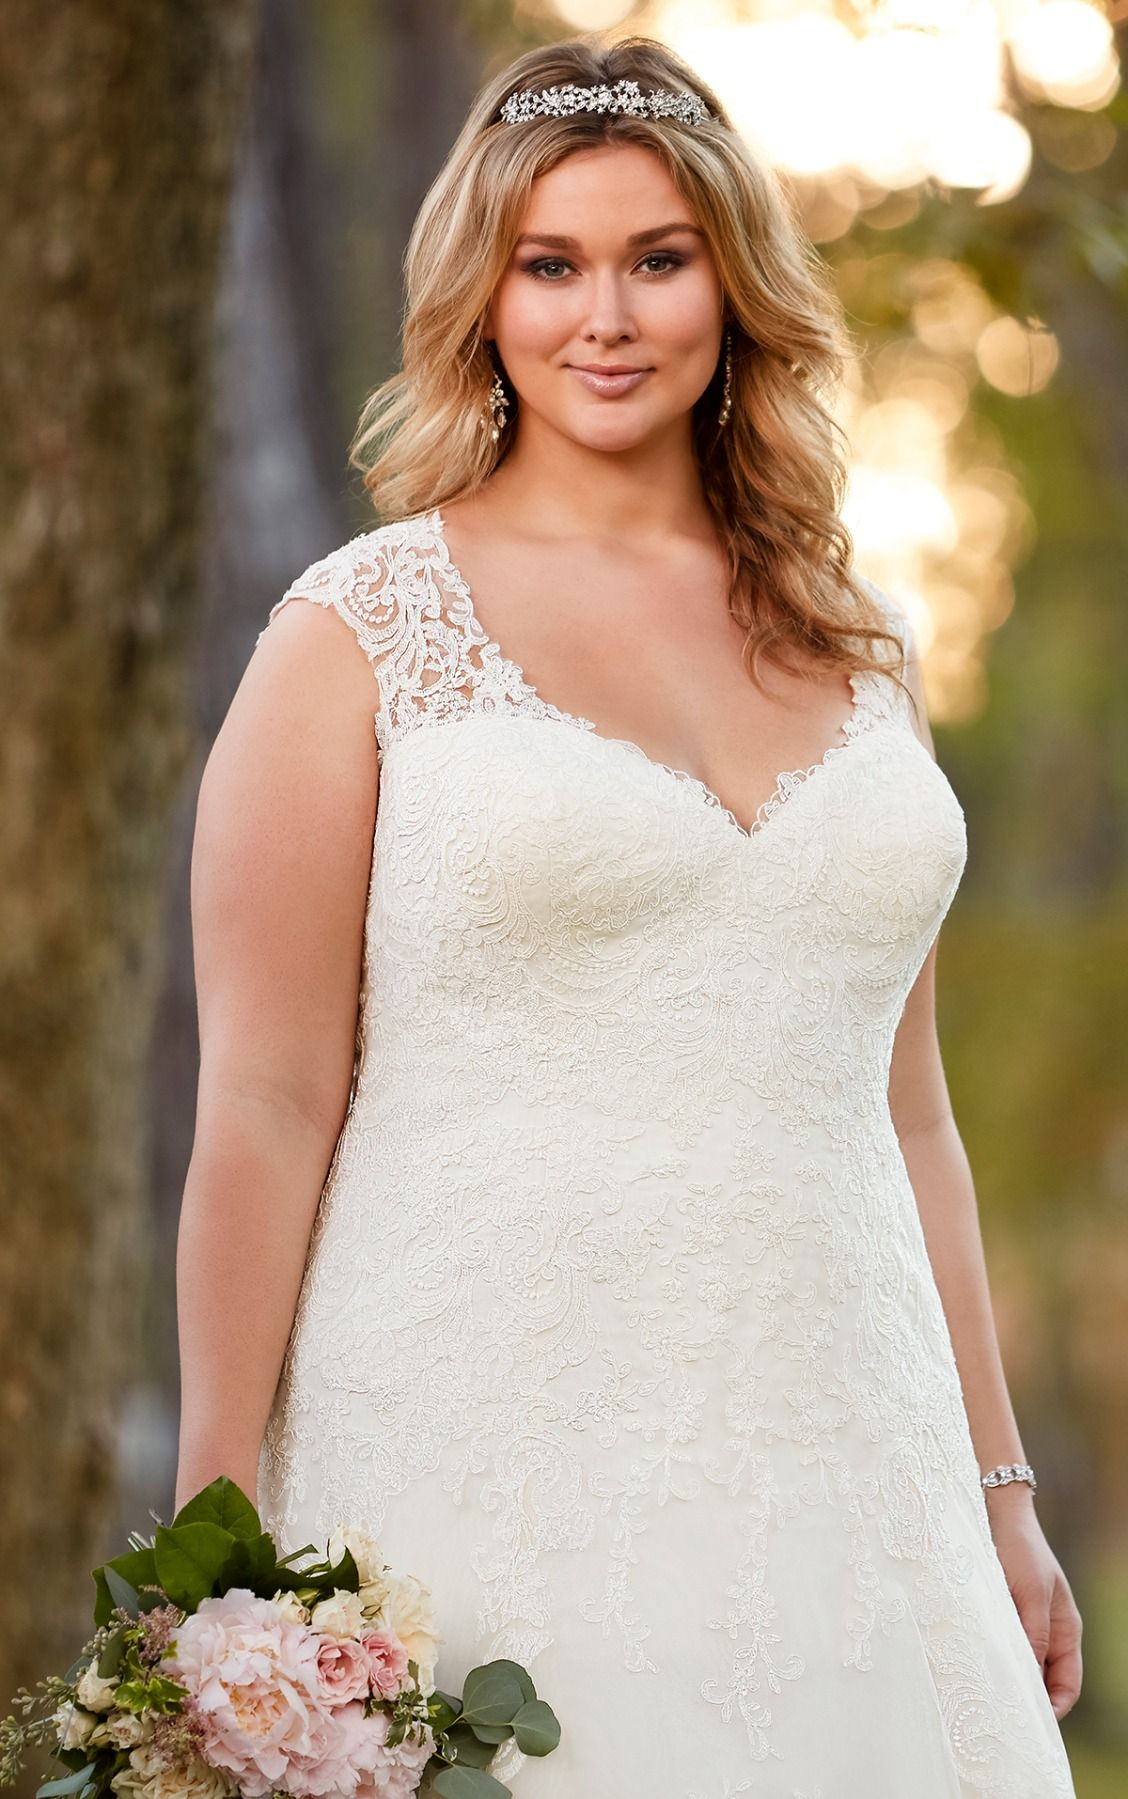 Lace cap sleeve a line wedding dress  ALine Sweetheart Wedding Dress  Hunter McGrady  Pinterest